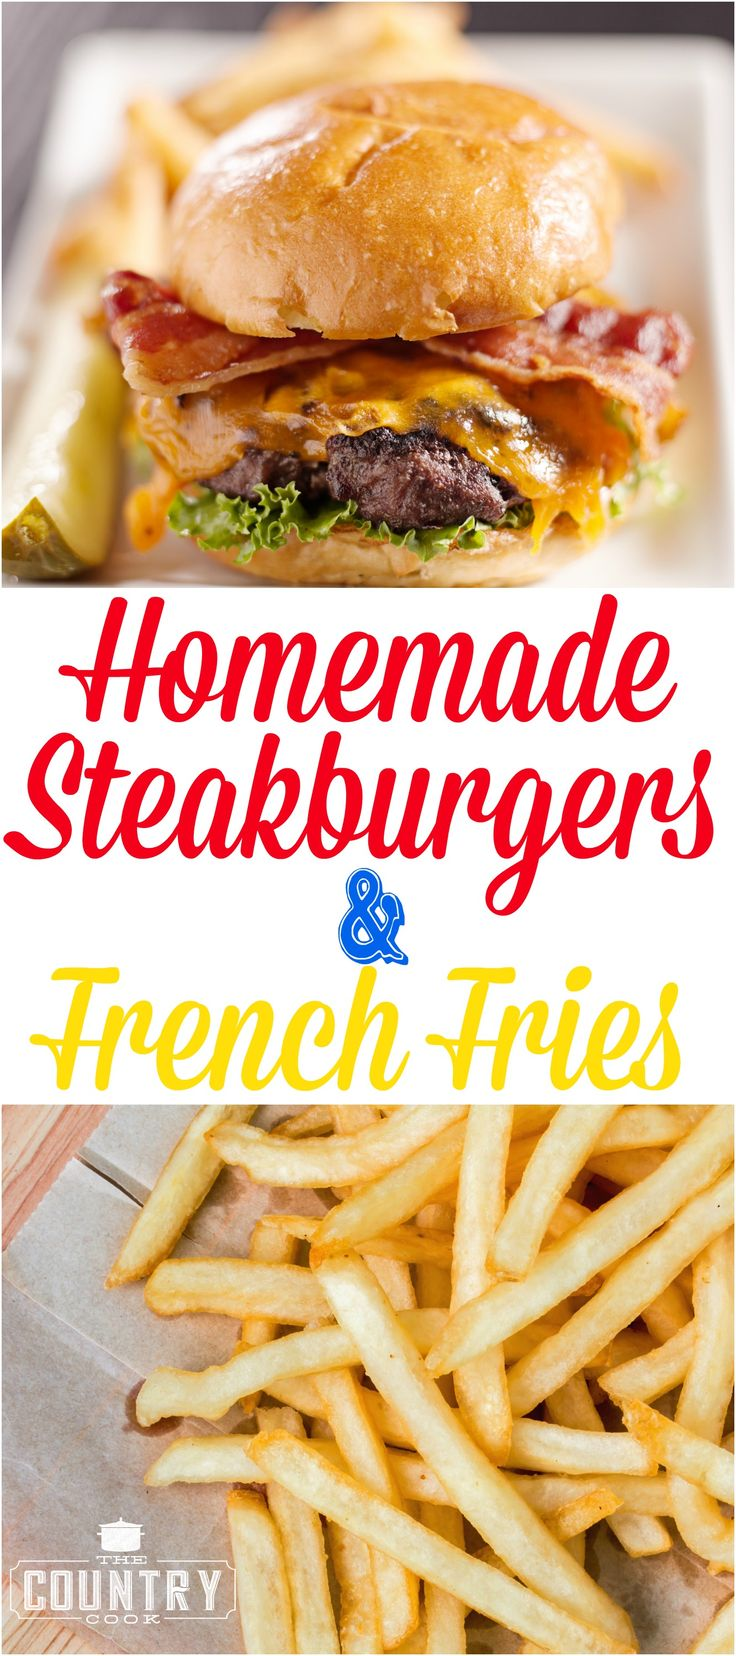 Homemade Diner Style Steakburgers like Steak and Shake burgers. Nothing tastes as good as a homemade hamburger. No grinder needed! And a great and super tasty recipe for homemade french fries!